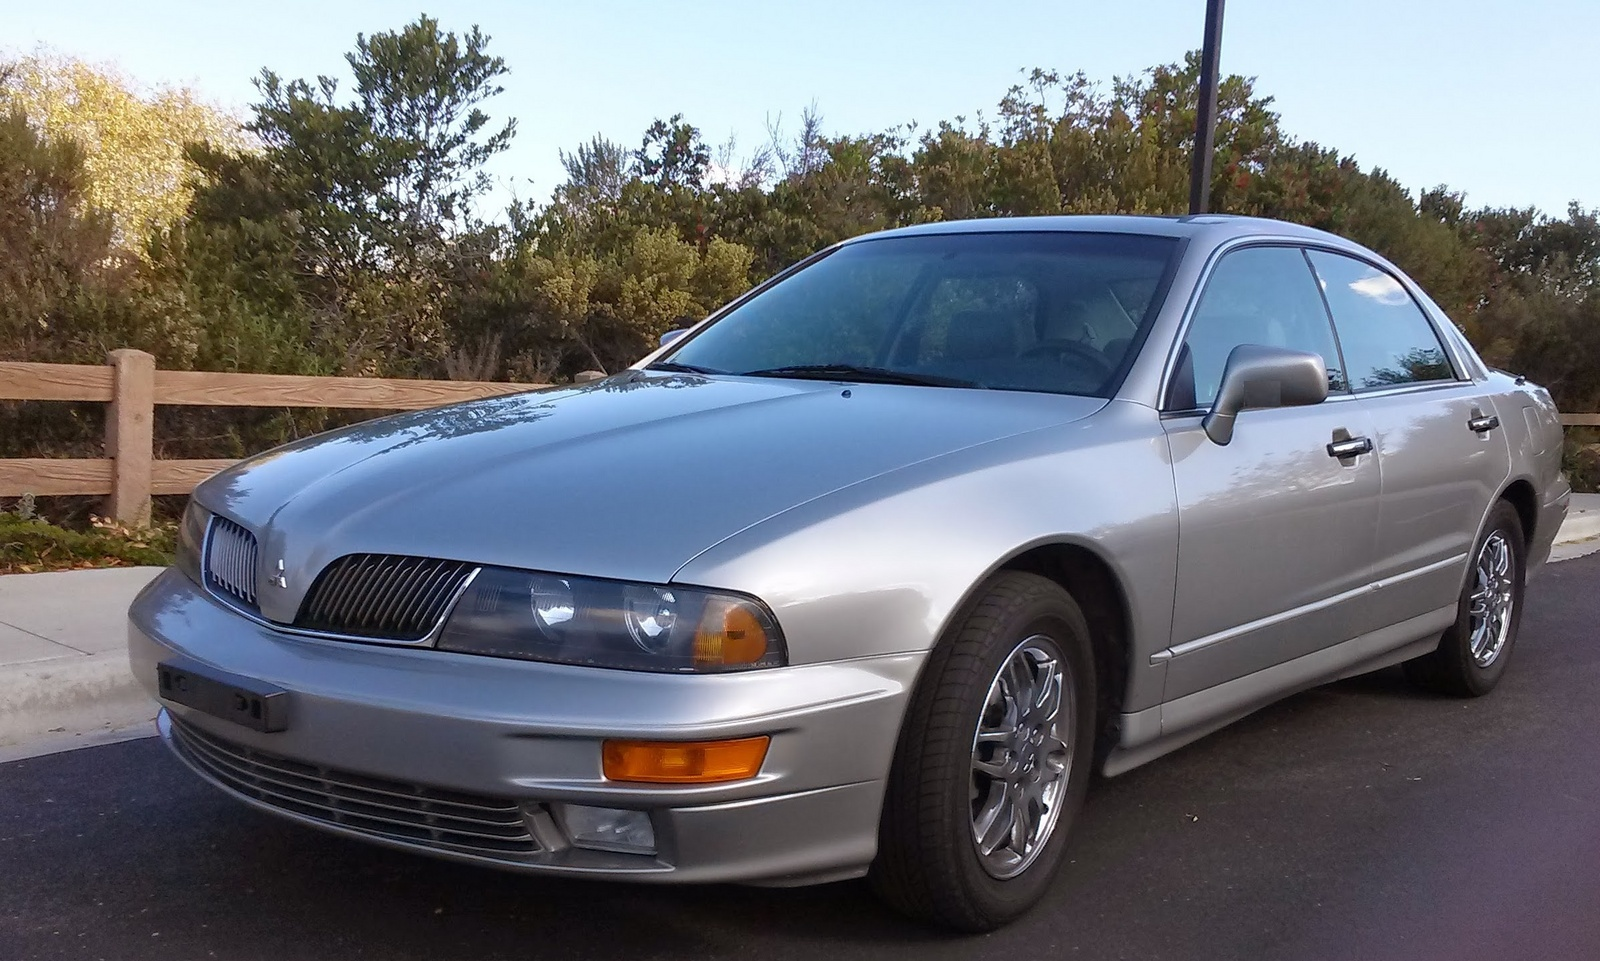 Picture of 2002 Mitsubishi Diamante 4 Dr LS Sedan